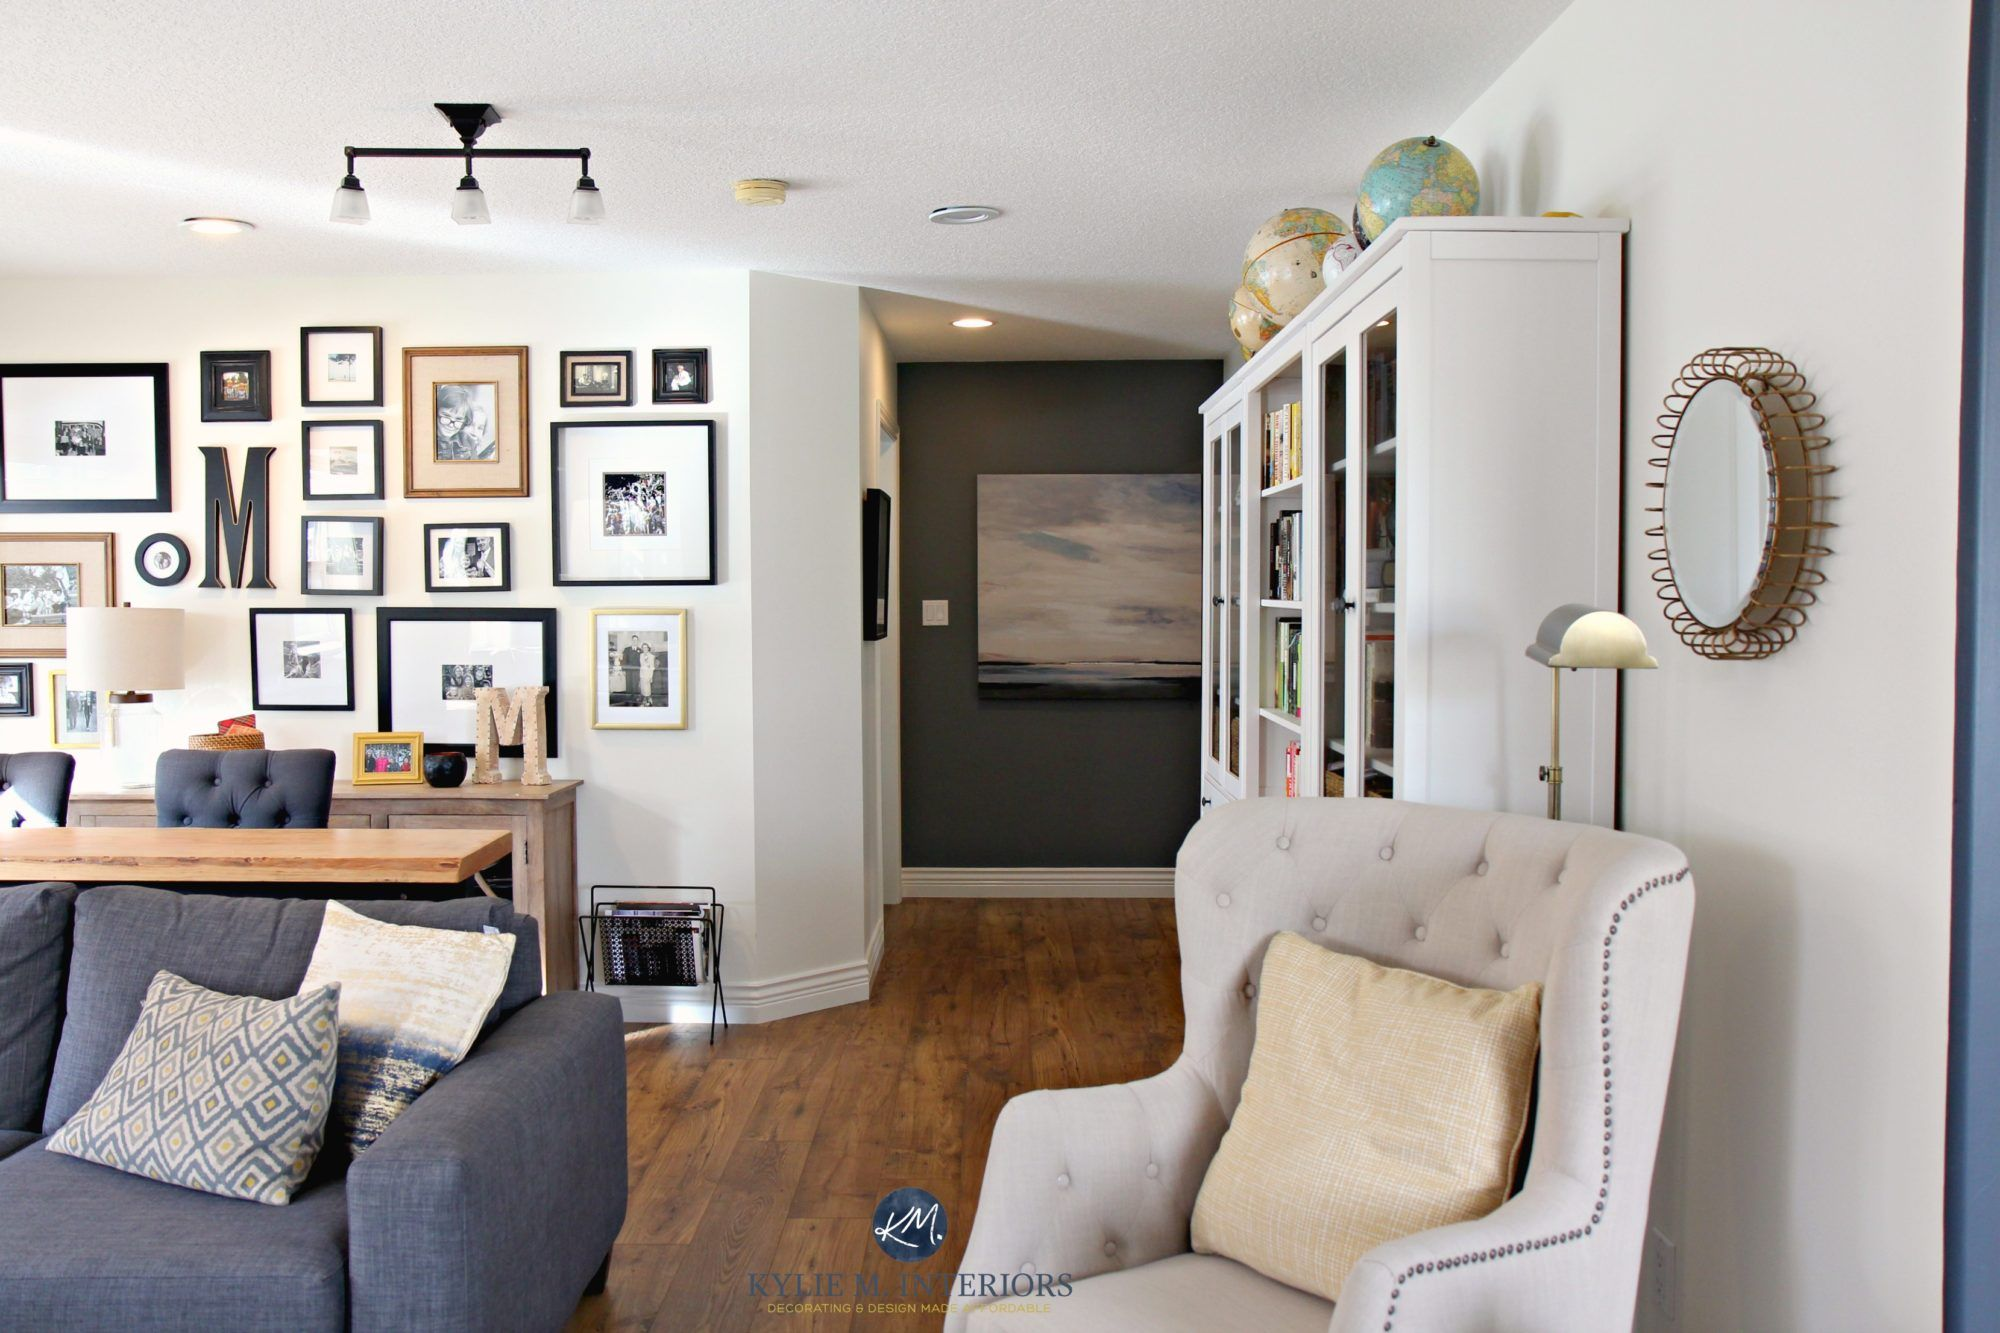 Colour Review Sherwin Williams Creamy Sw 7012 Grey Feature Wall White Rooms Cream Living Room Paint